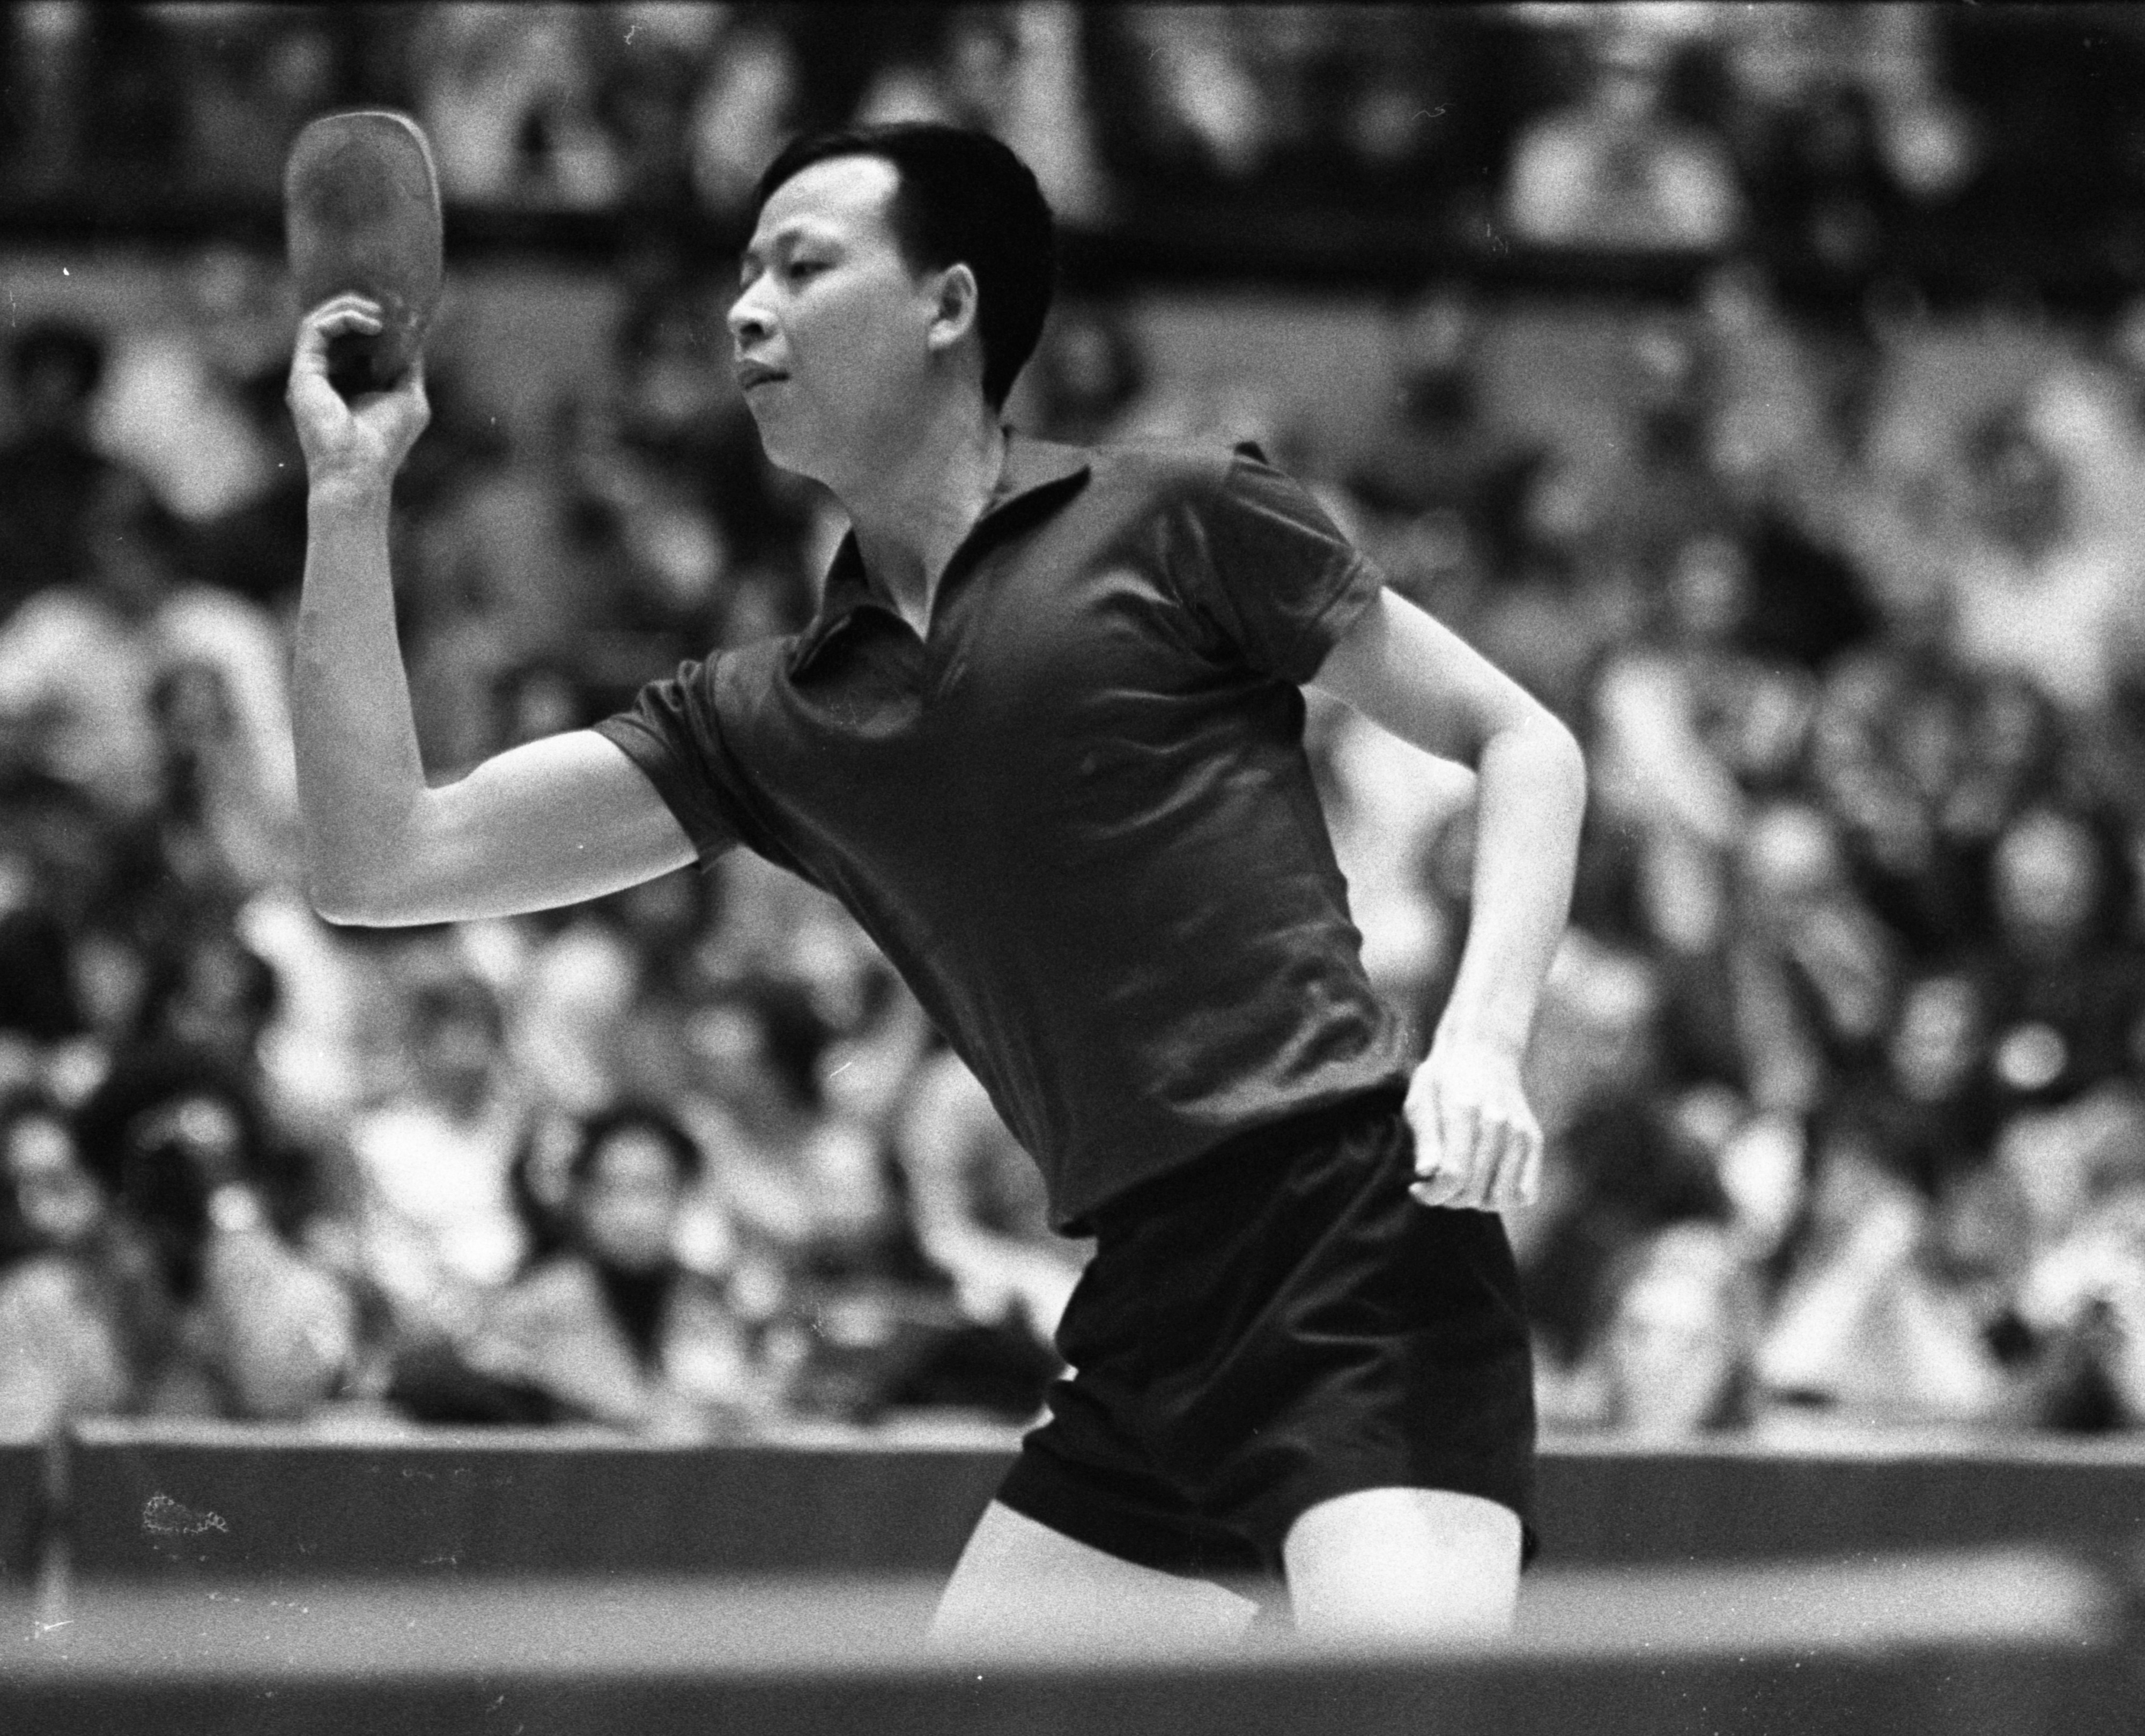 Chinese Ping-Pong Player, Ch'en Pao-ching, At Ping-Pong Exhibition Match At Crisler Arena, April 1972 image